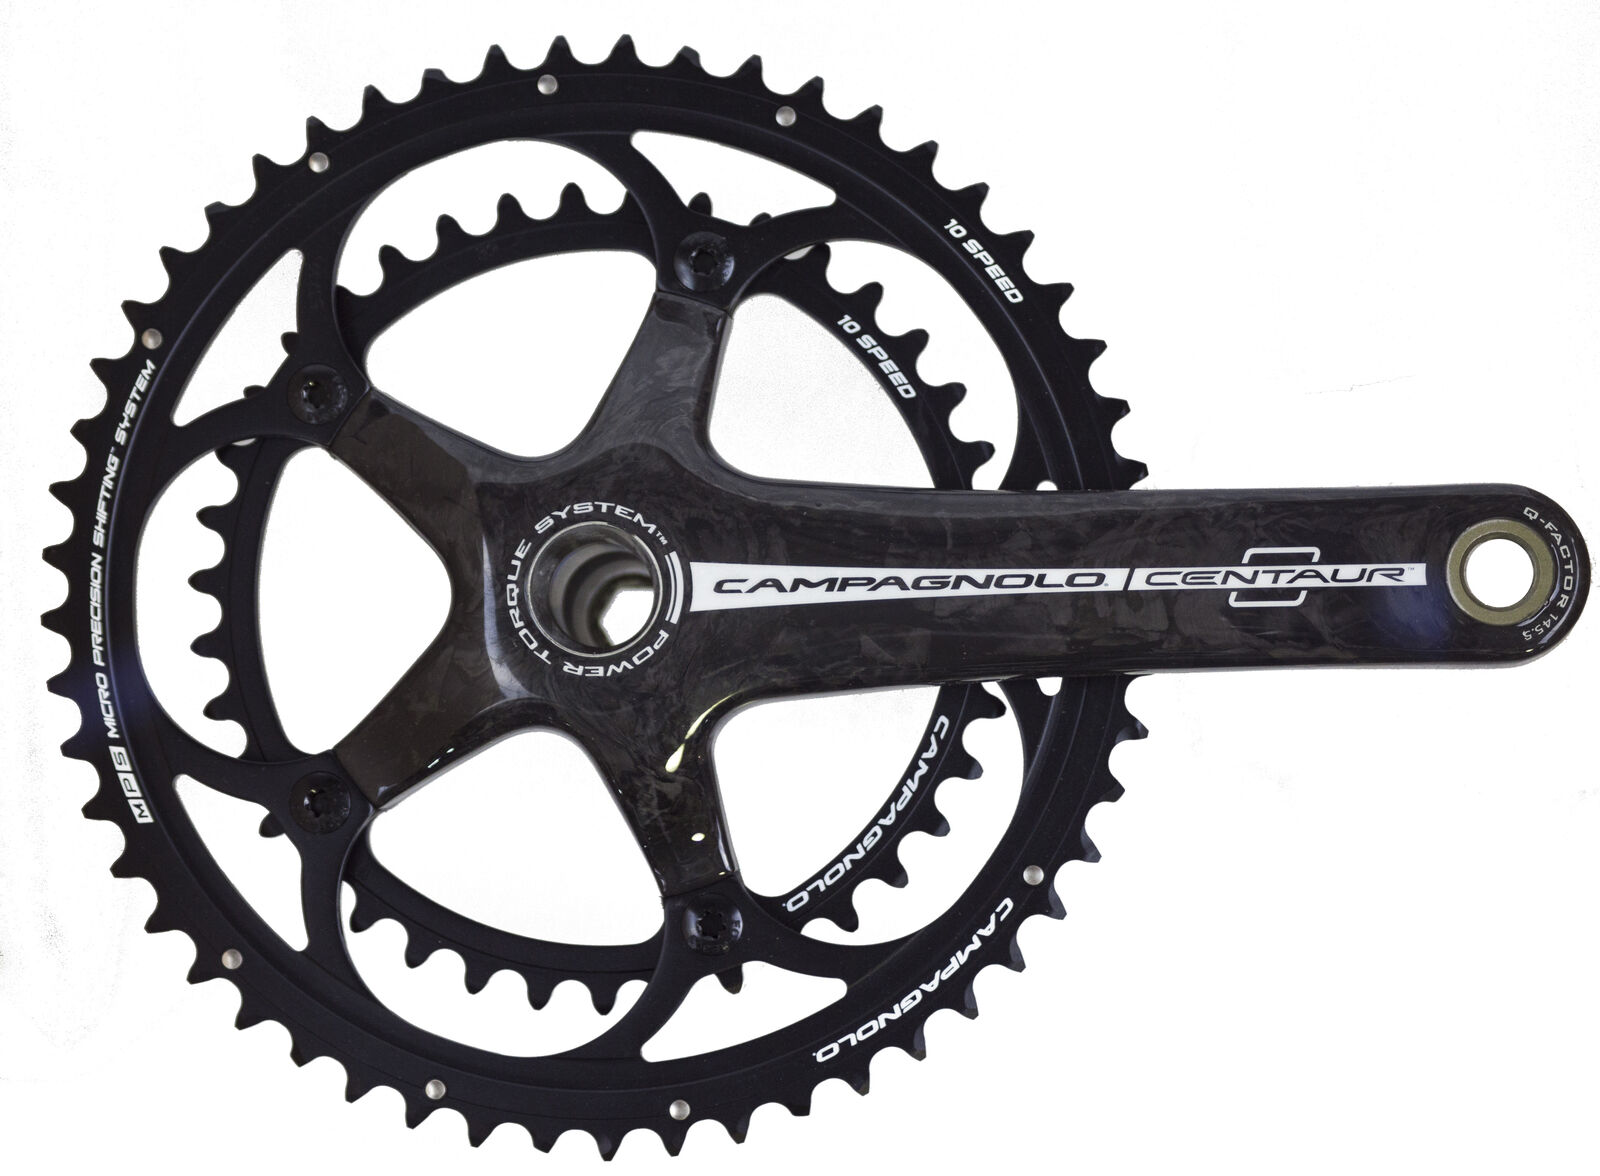 Campagnolo Centaur Carbon Power-Torque 10 Speed Double Standard 39 53 - 170mm